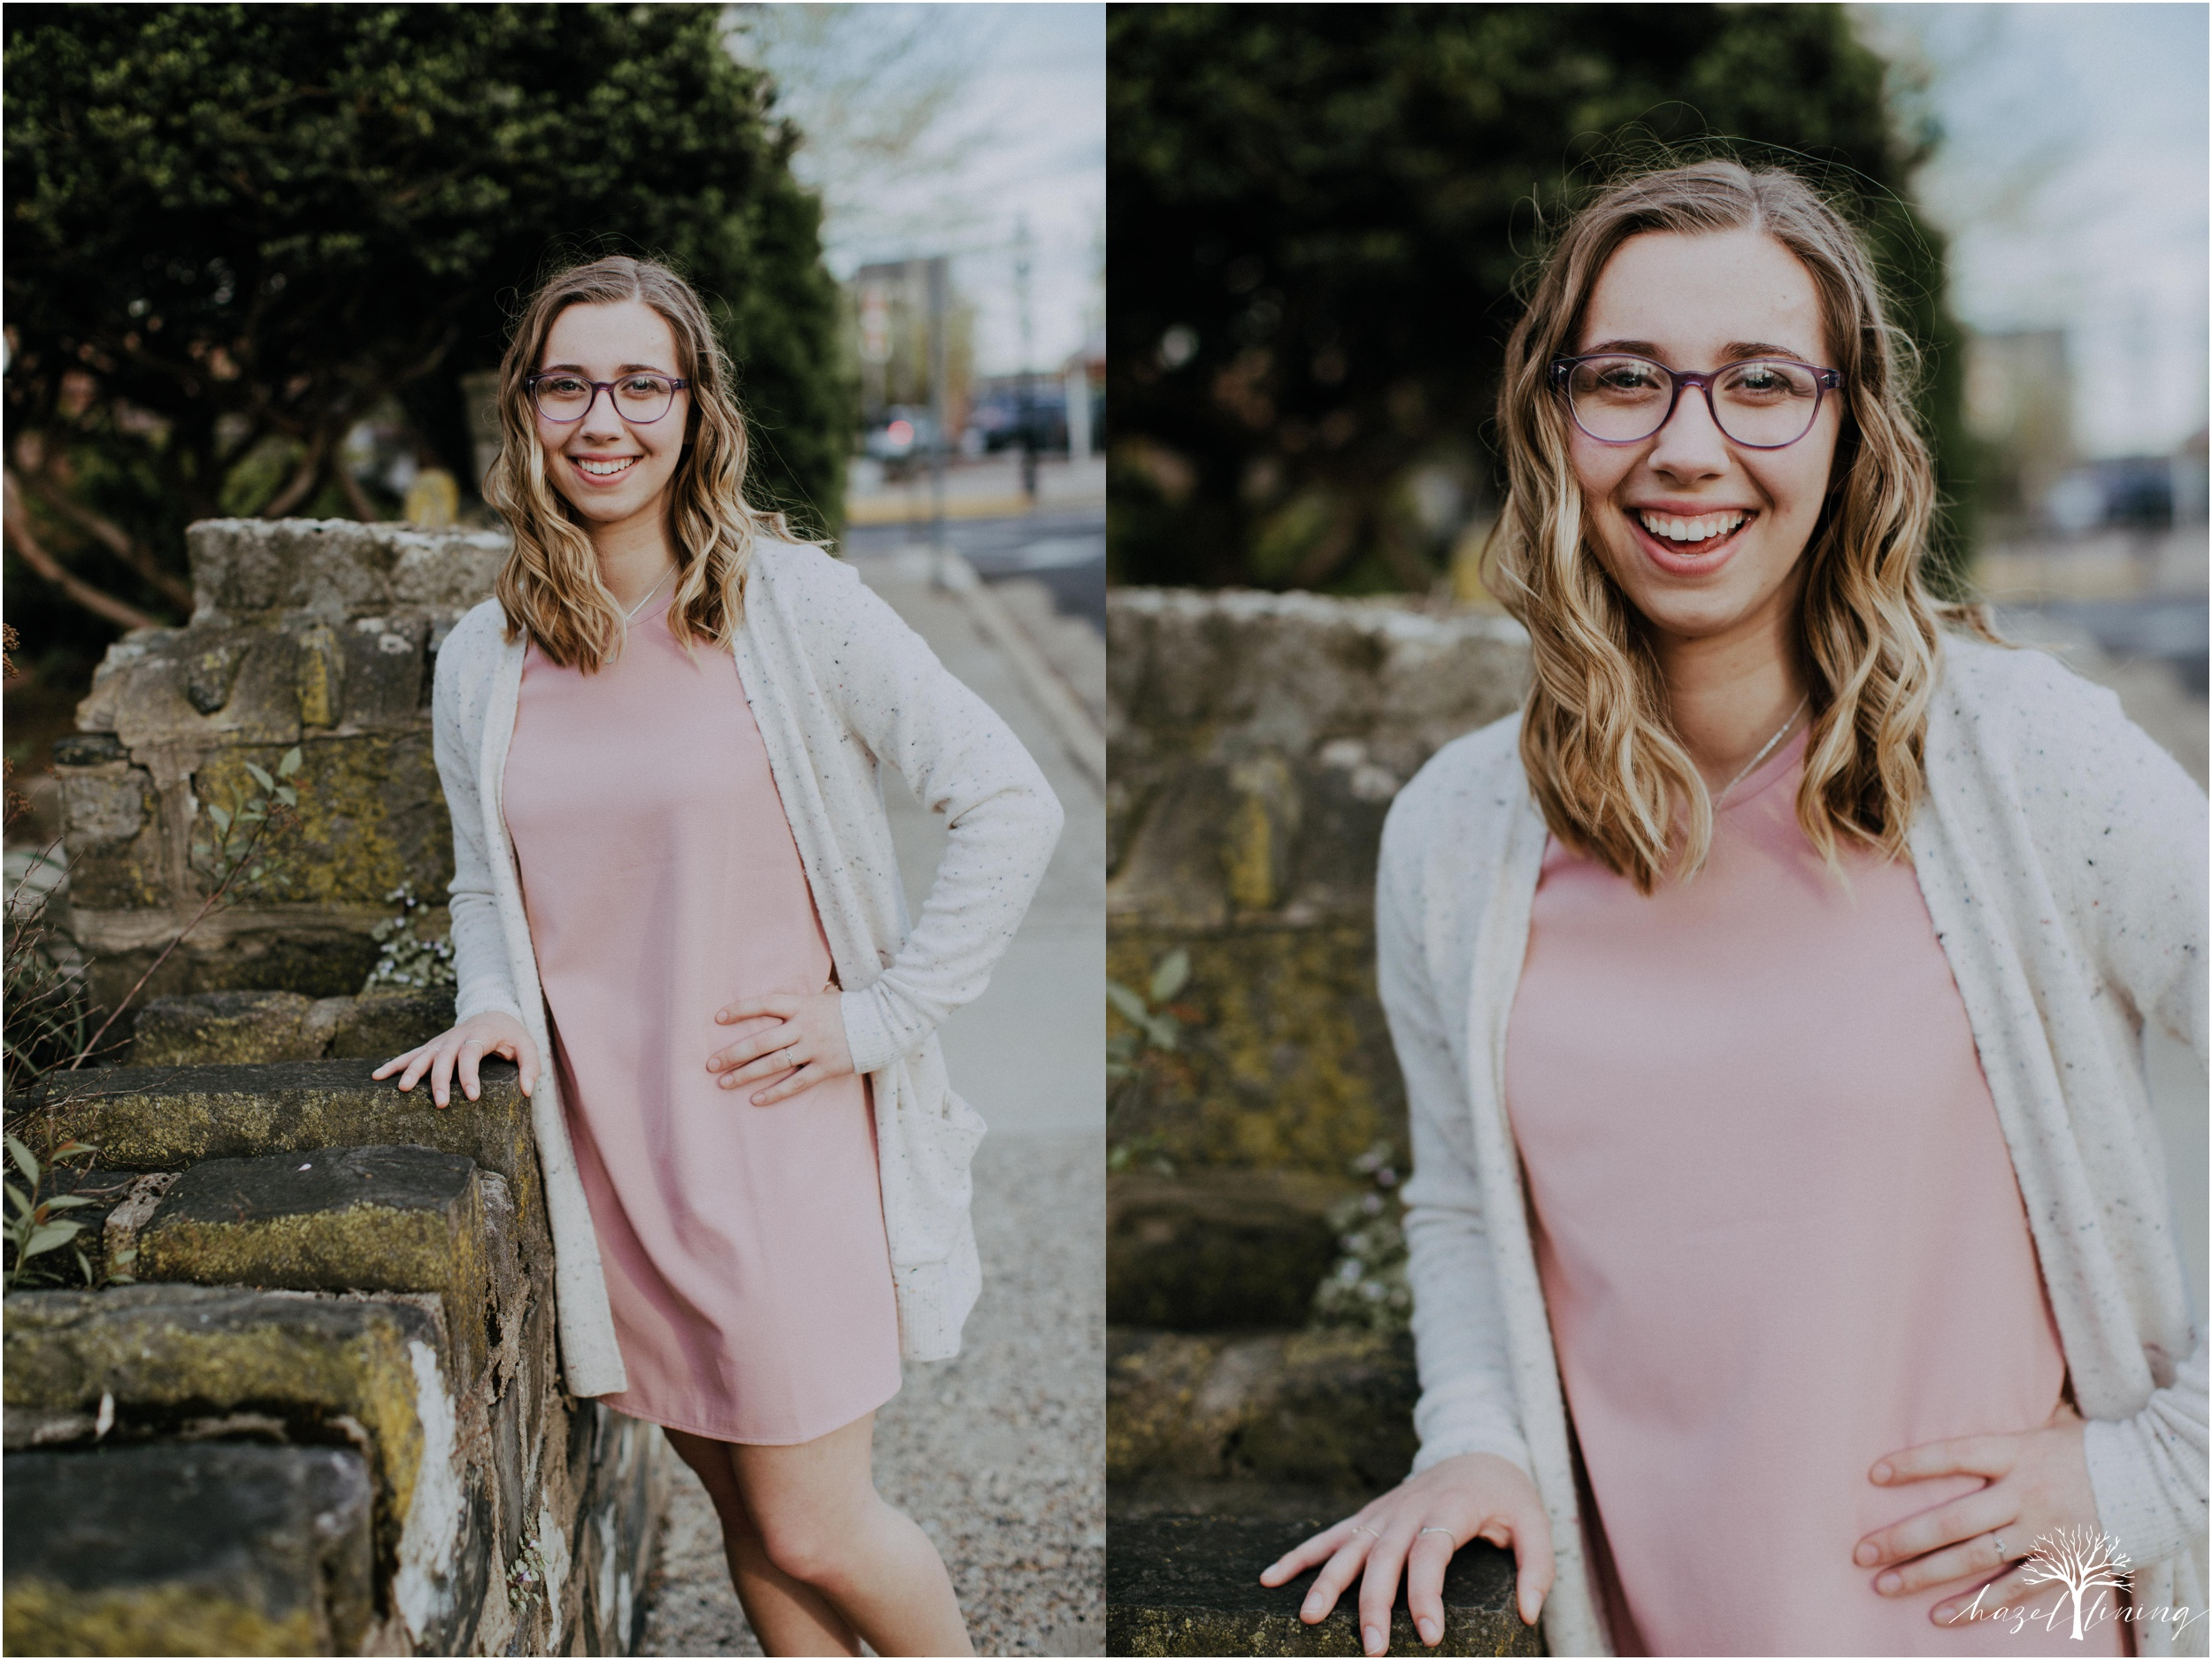 maddie-kiser-senior-portrait-session-doylestown-pennsylvania-spring-hazel-lining-photography-destination-elopement-wedding-engagement-photography-year-in-review_0017.jpg